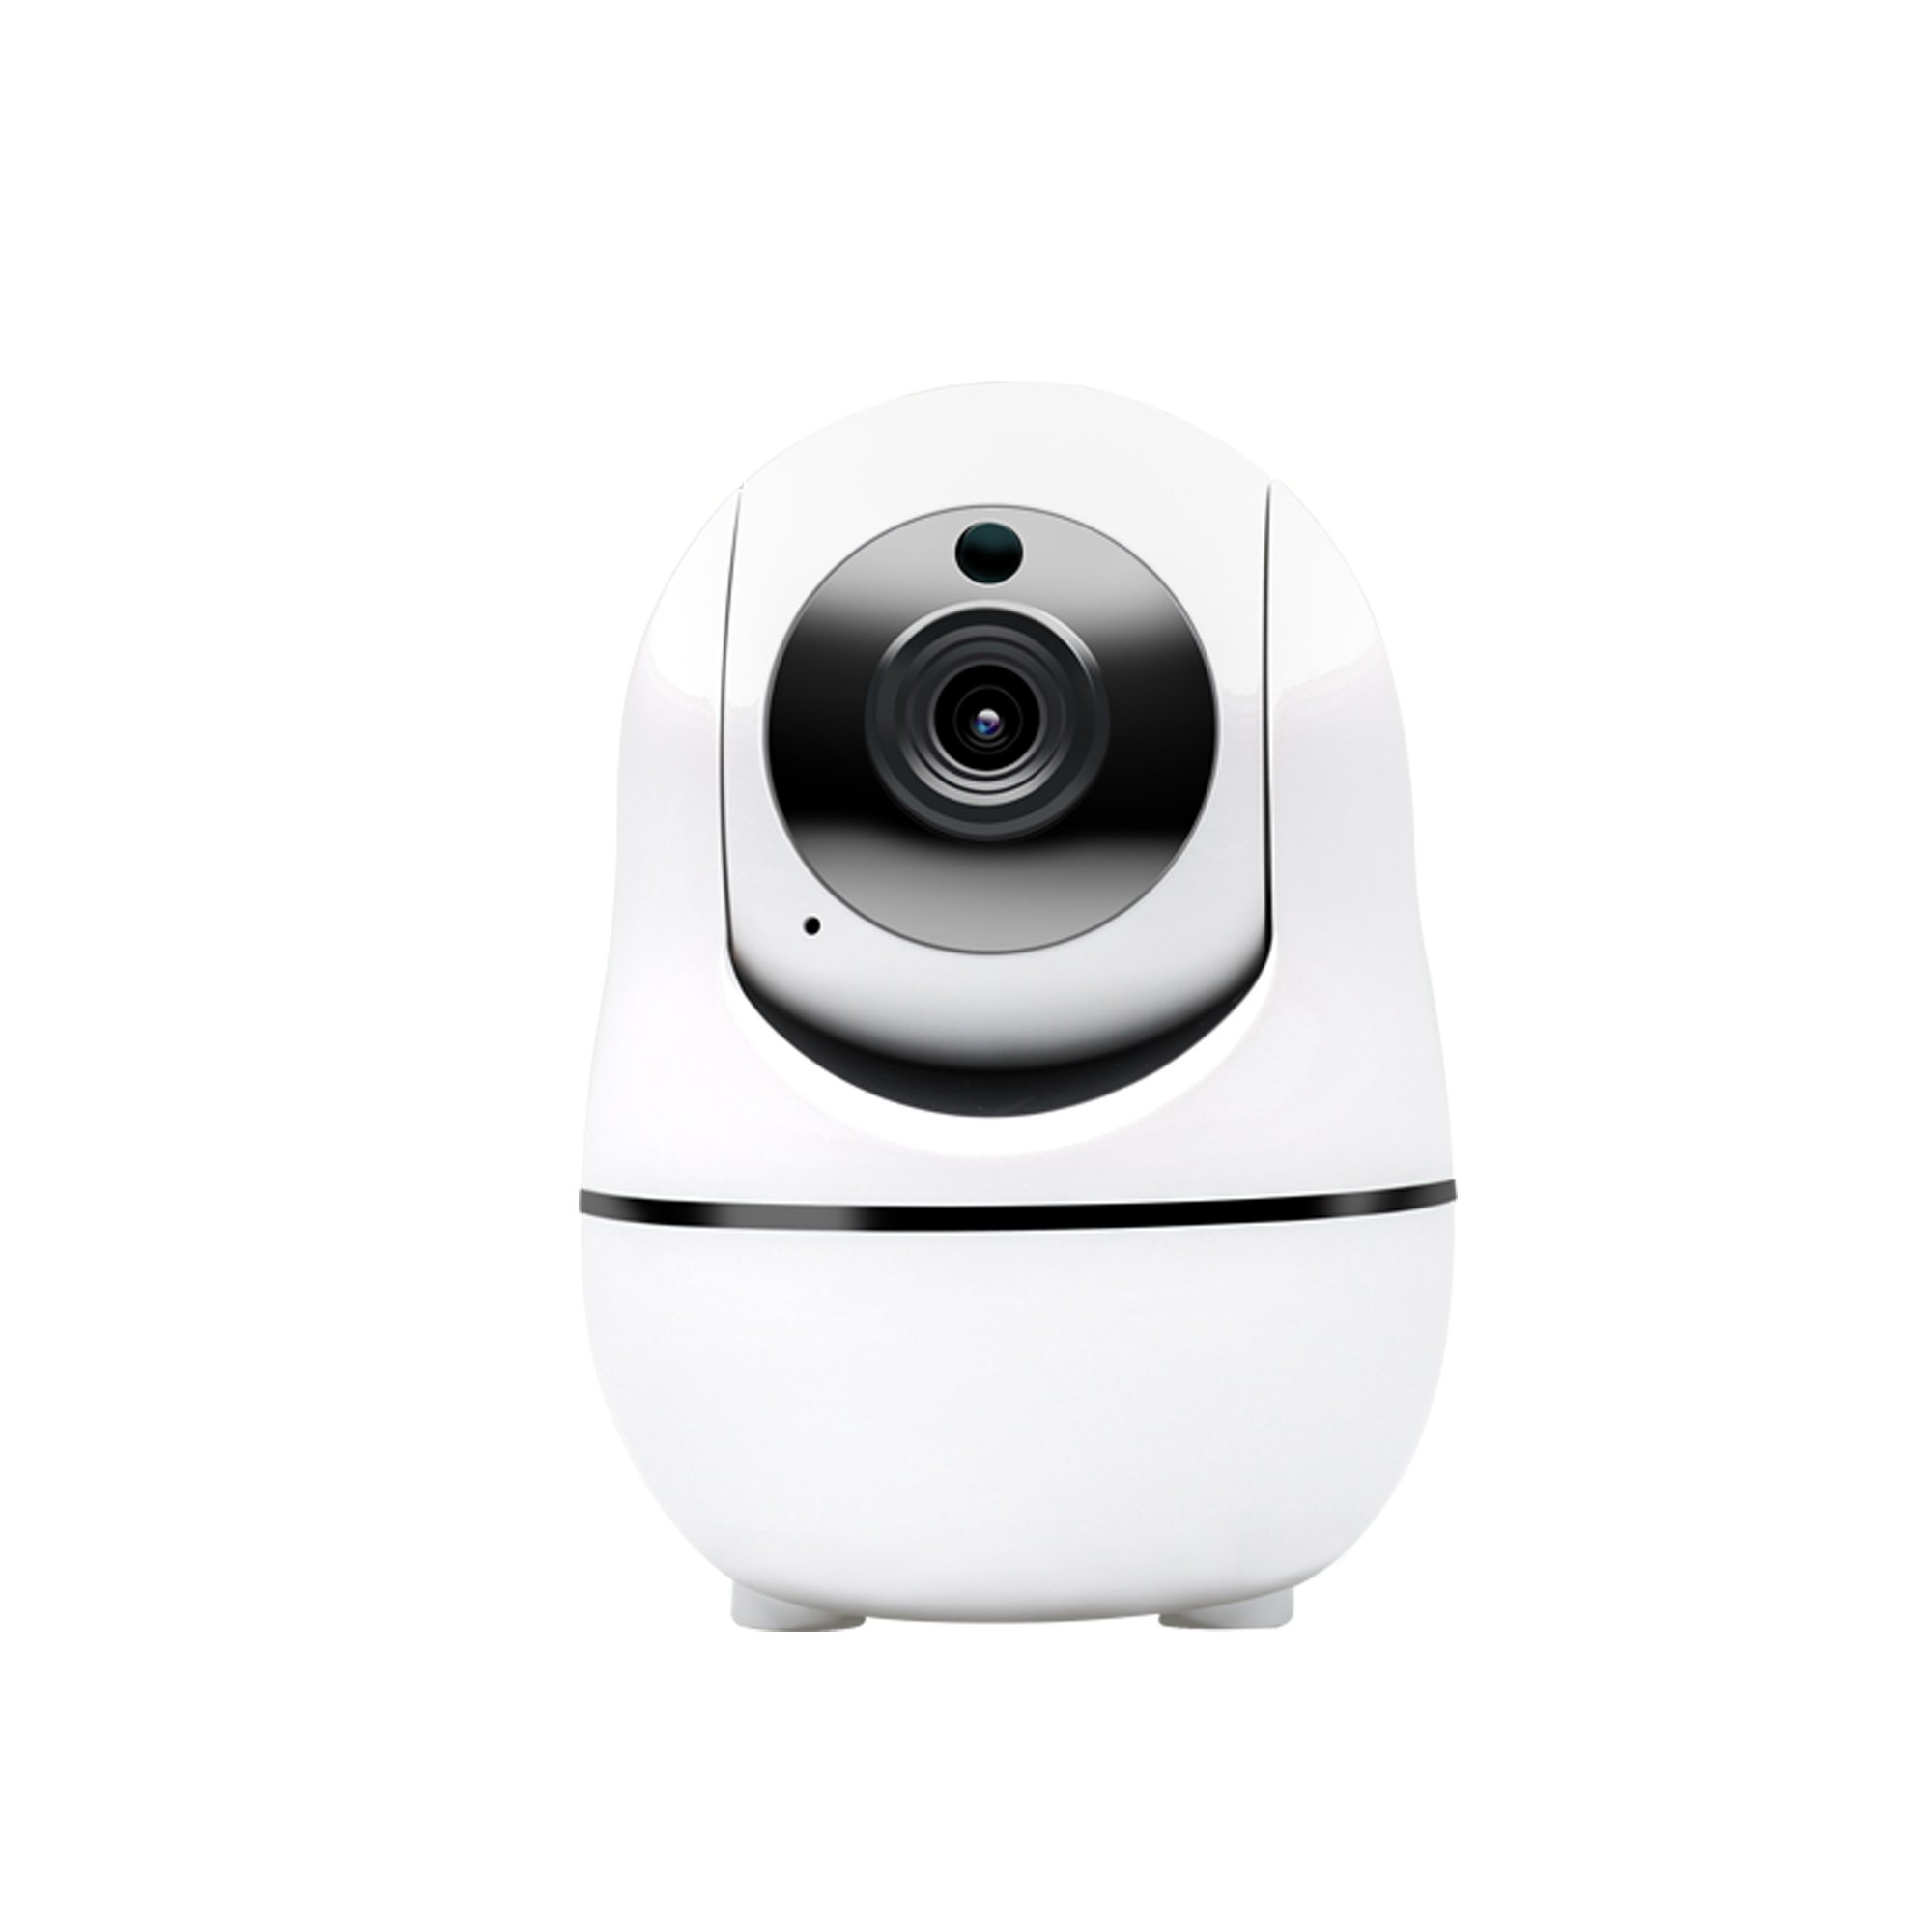 Ouvis VZ1 1080 HD Pan Tilt Zoom Wireless WiFi Security Camera, Smart Home IP Camera, Video Surveillance with Motion Detection, Siren Alarm, Two-Way Audio, Night Vision, and APP for Android/iPhone/PC